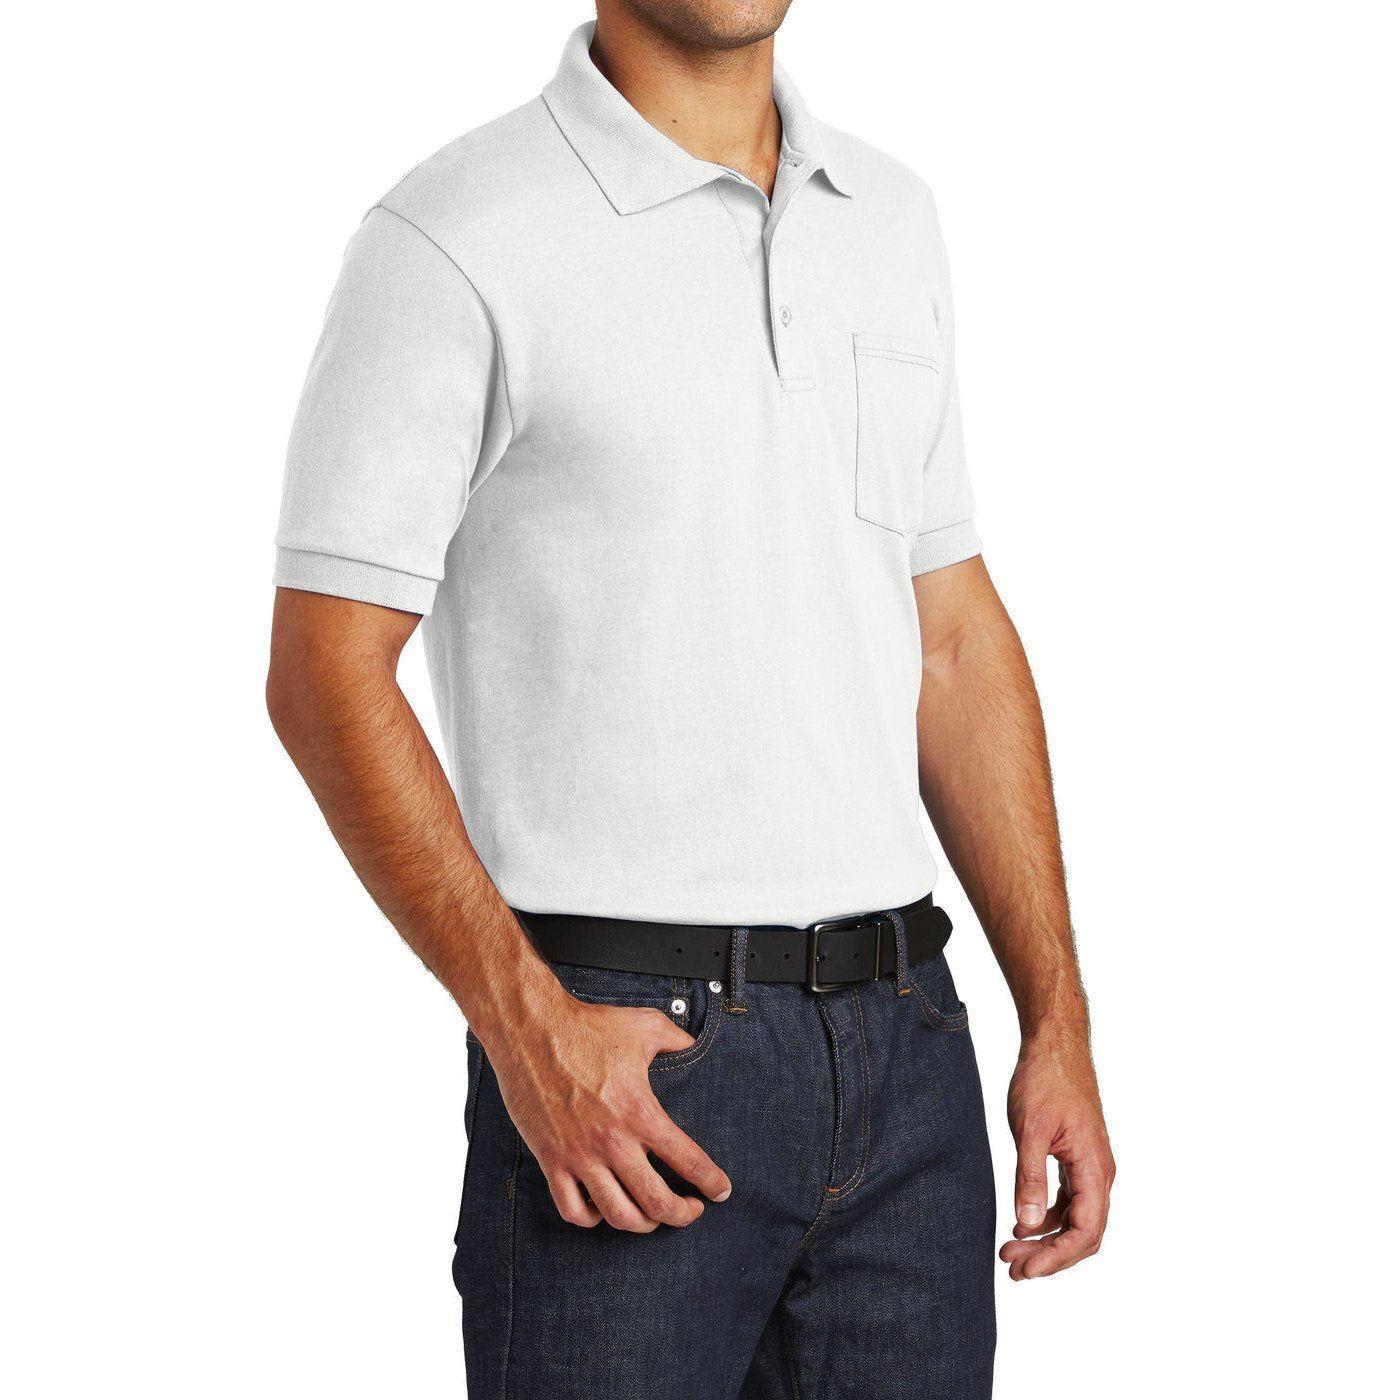 Mafoose Men's Core Blend Jersey Knit Pocket Polo Shirt White